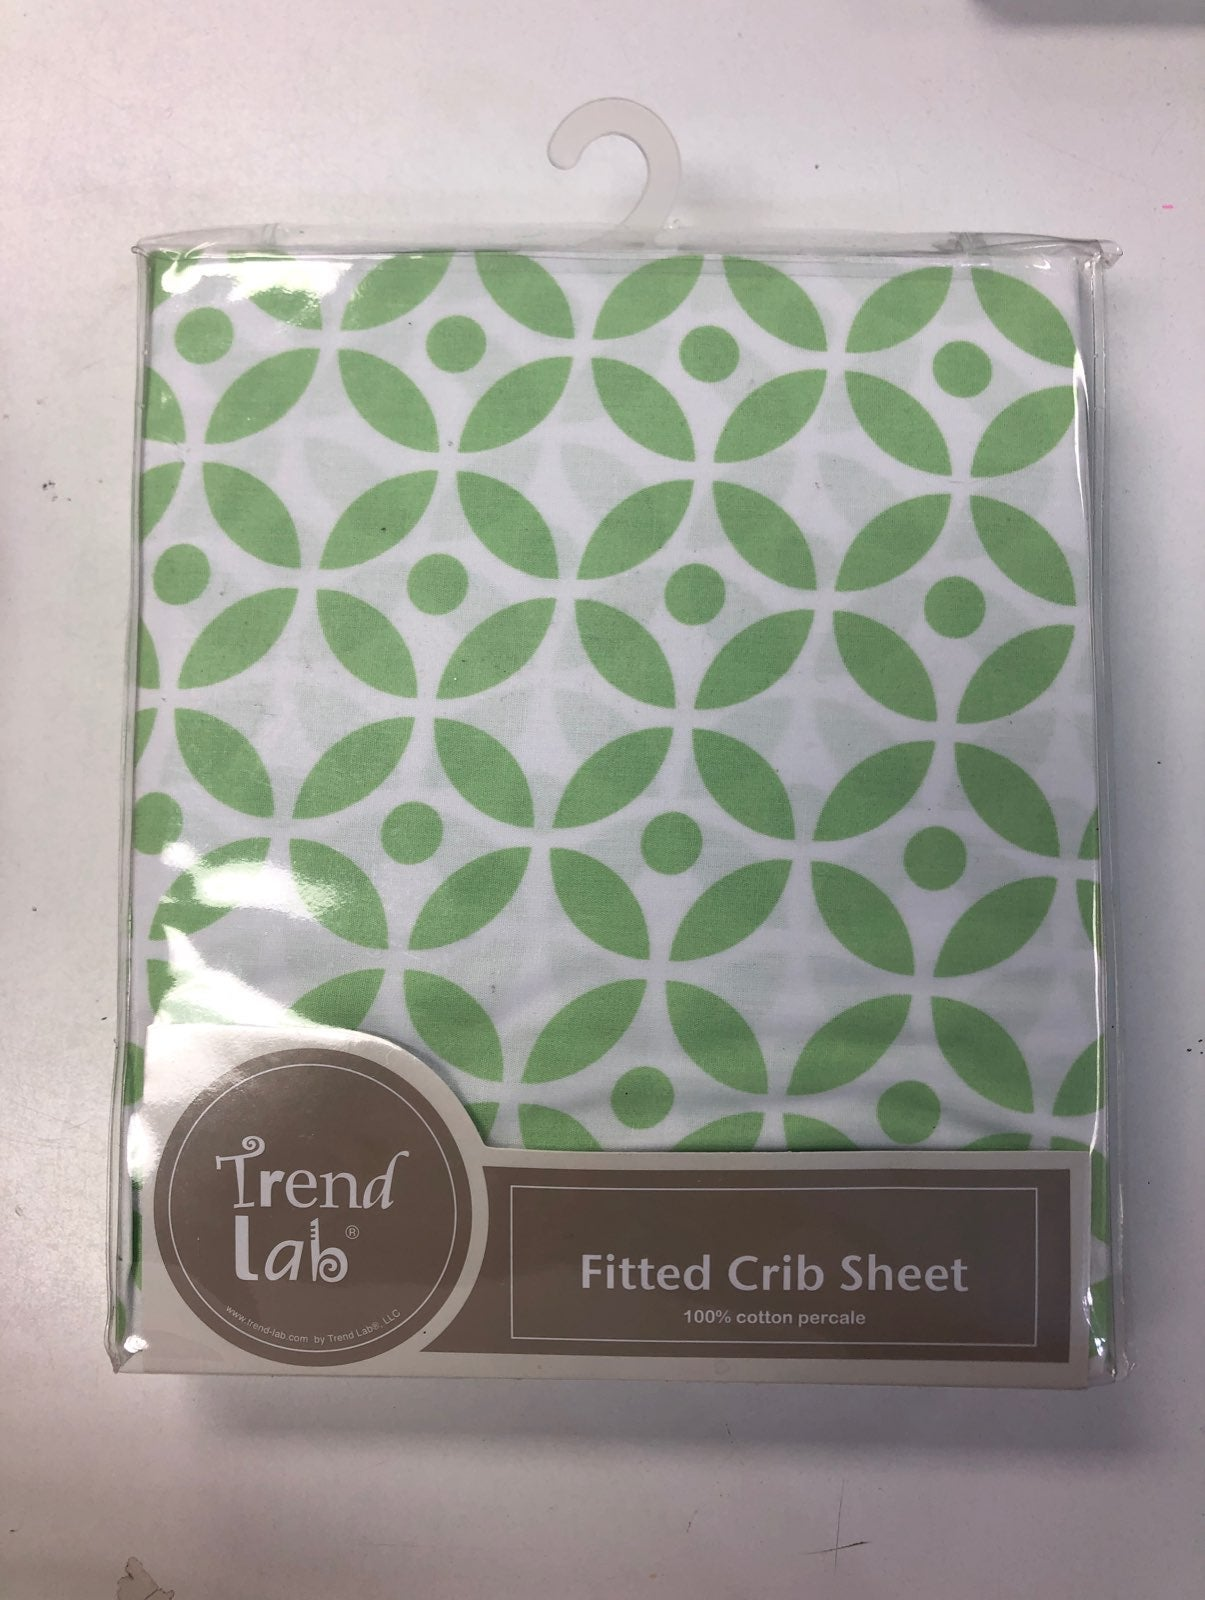 Trend lab fitted crib sheet